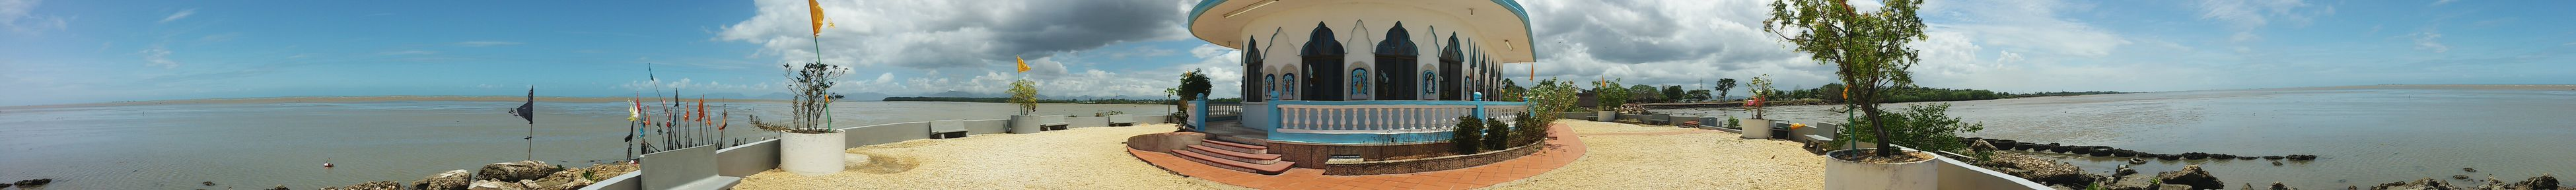 Showcase March Temple In The Sea Waterloo Trinidad And Tobago Historical Place